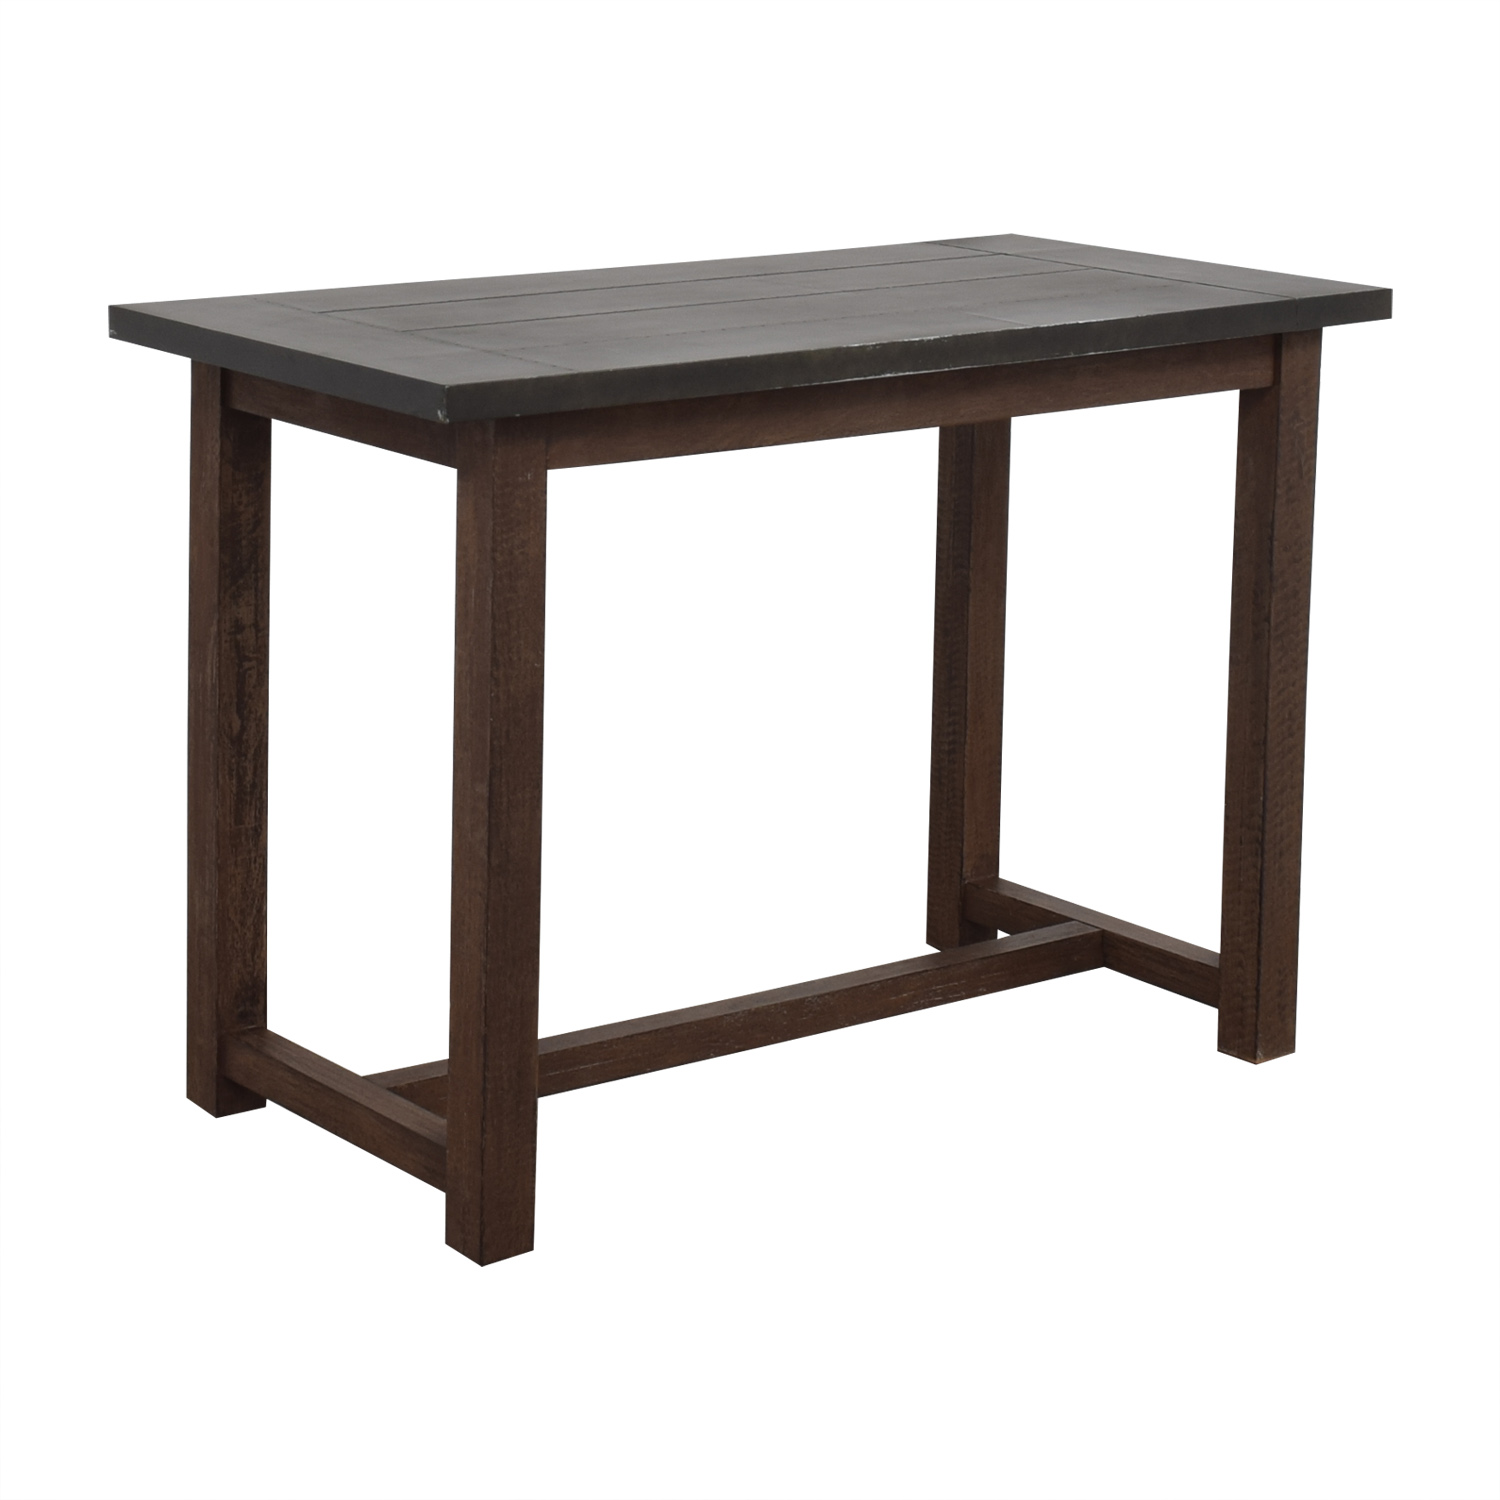 Crate & Barrel Crate & Barrel Galvin High Dining Table on sale